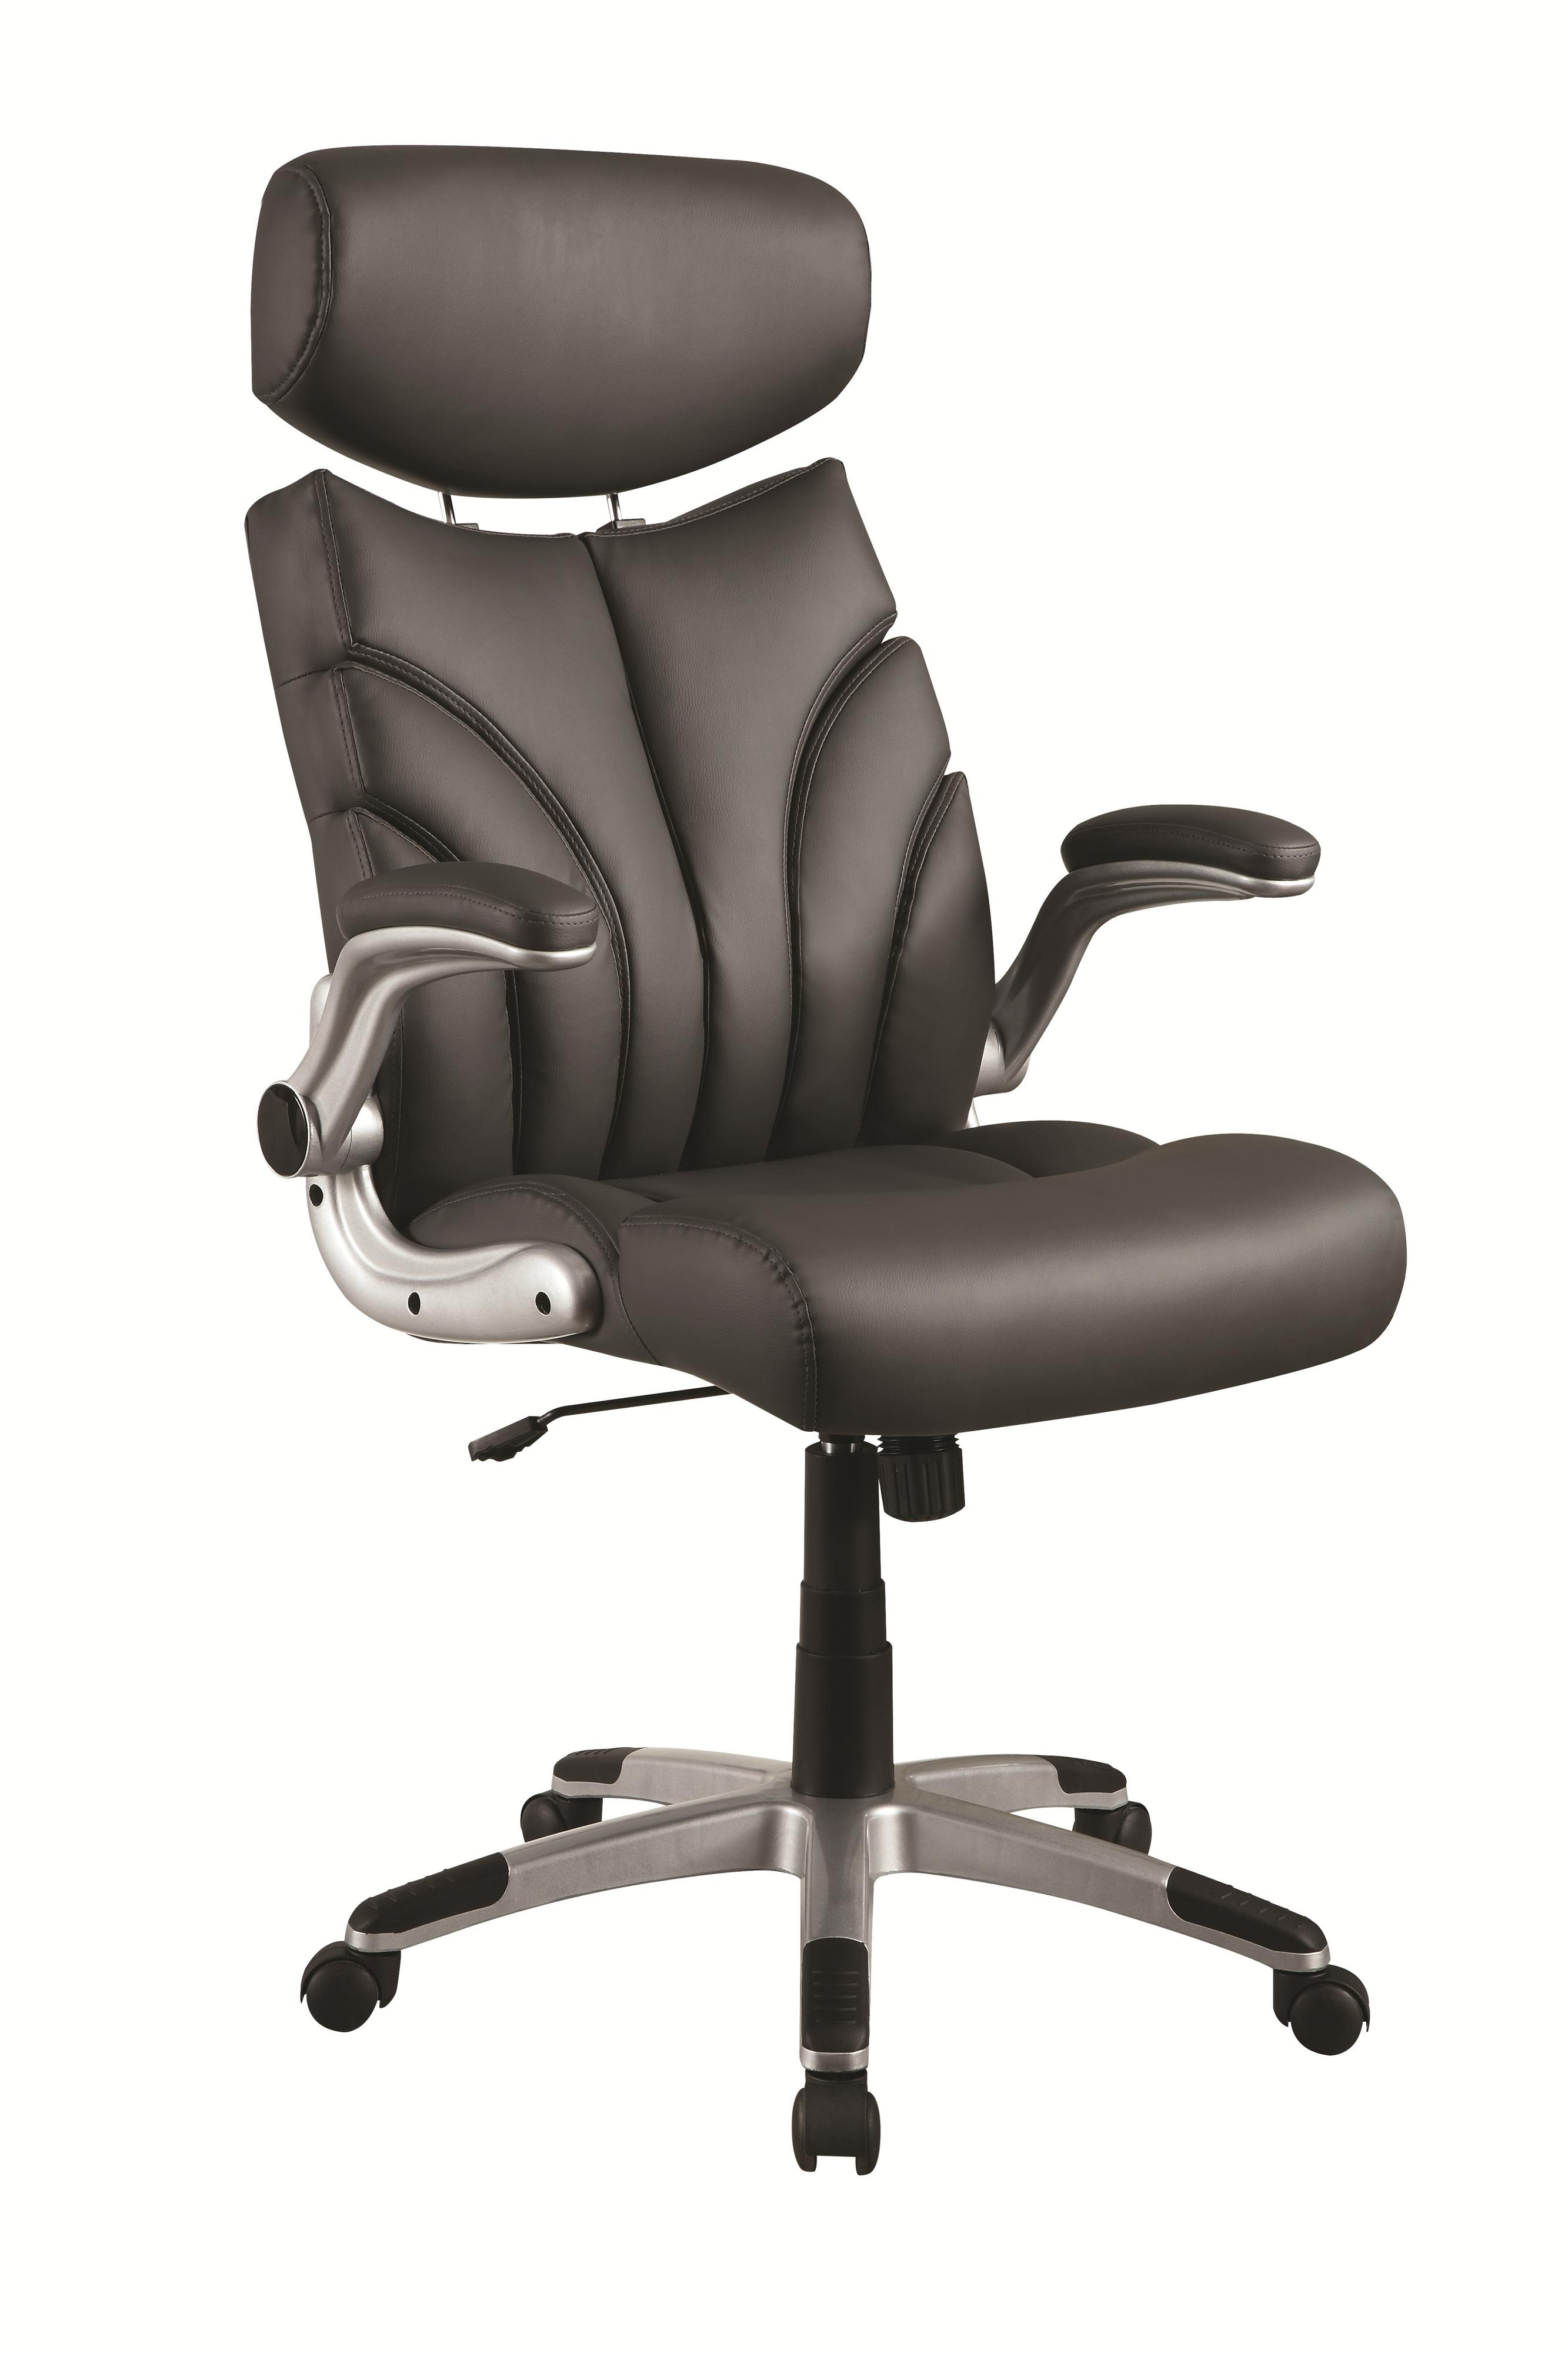 Coaster Office Chairs Office Chair - Item Number: 800164